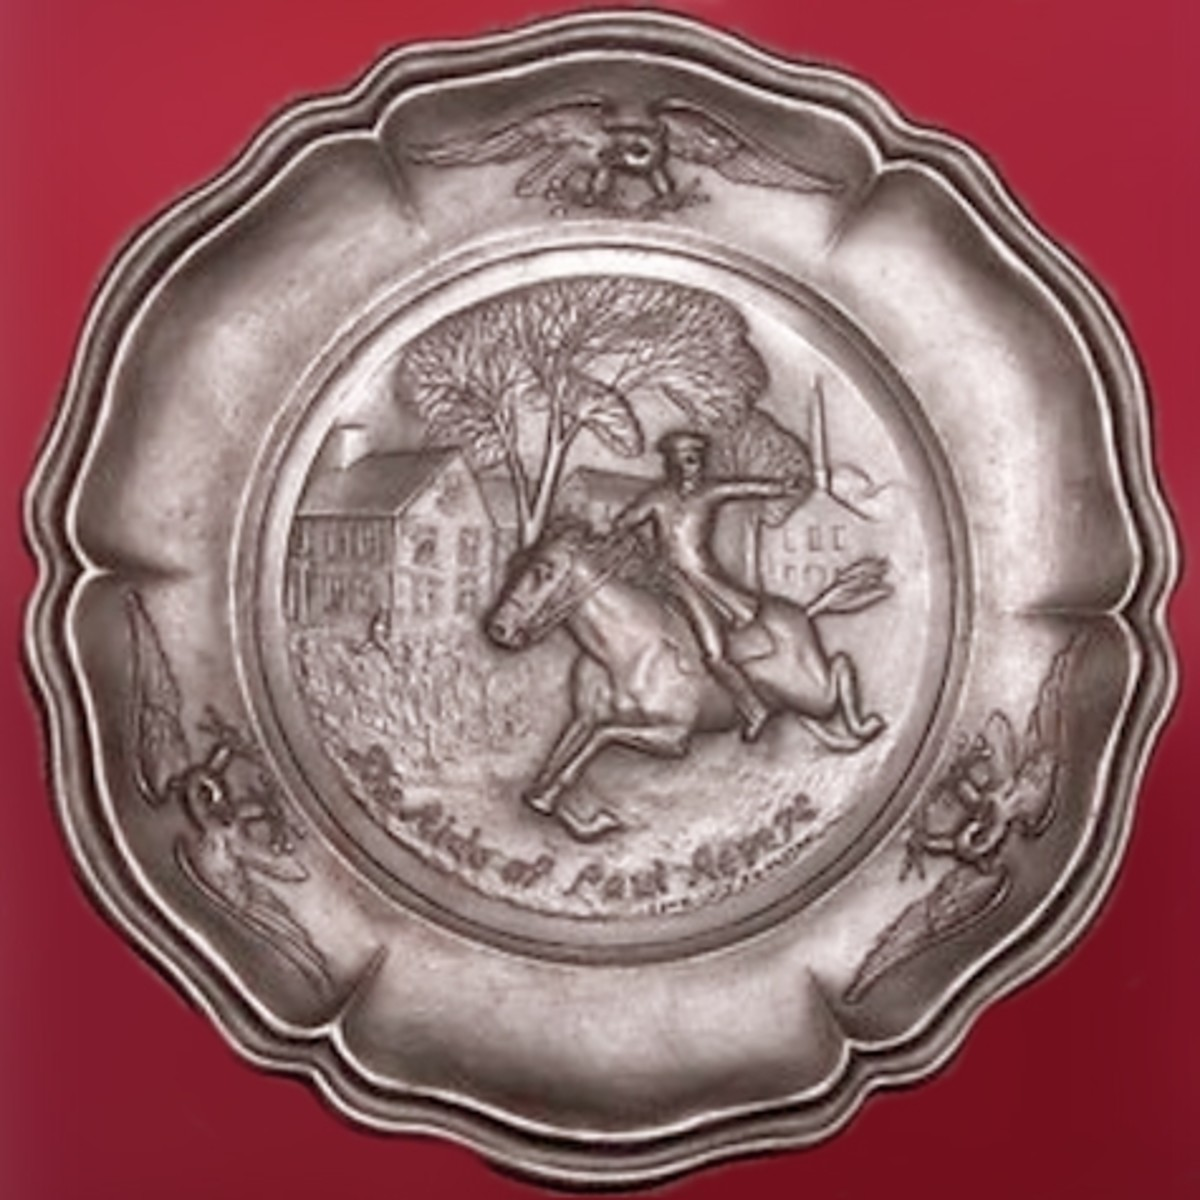 Paul Revere Pewter Plate